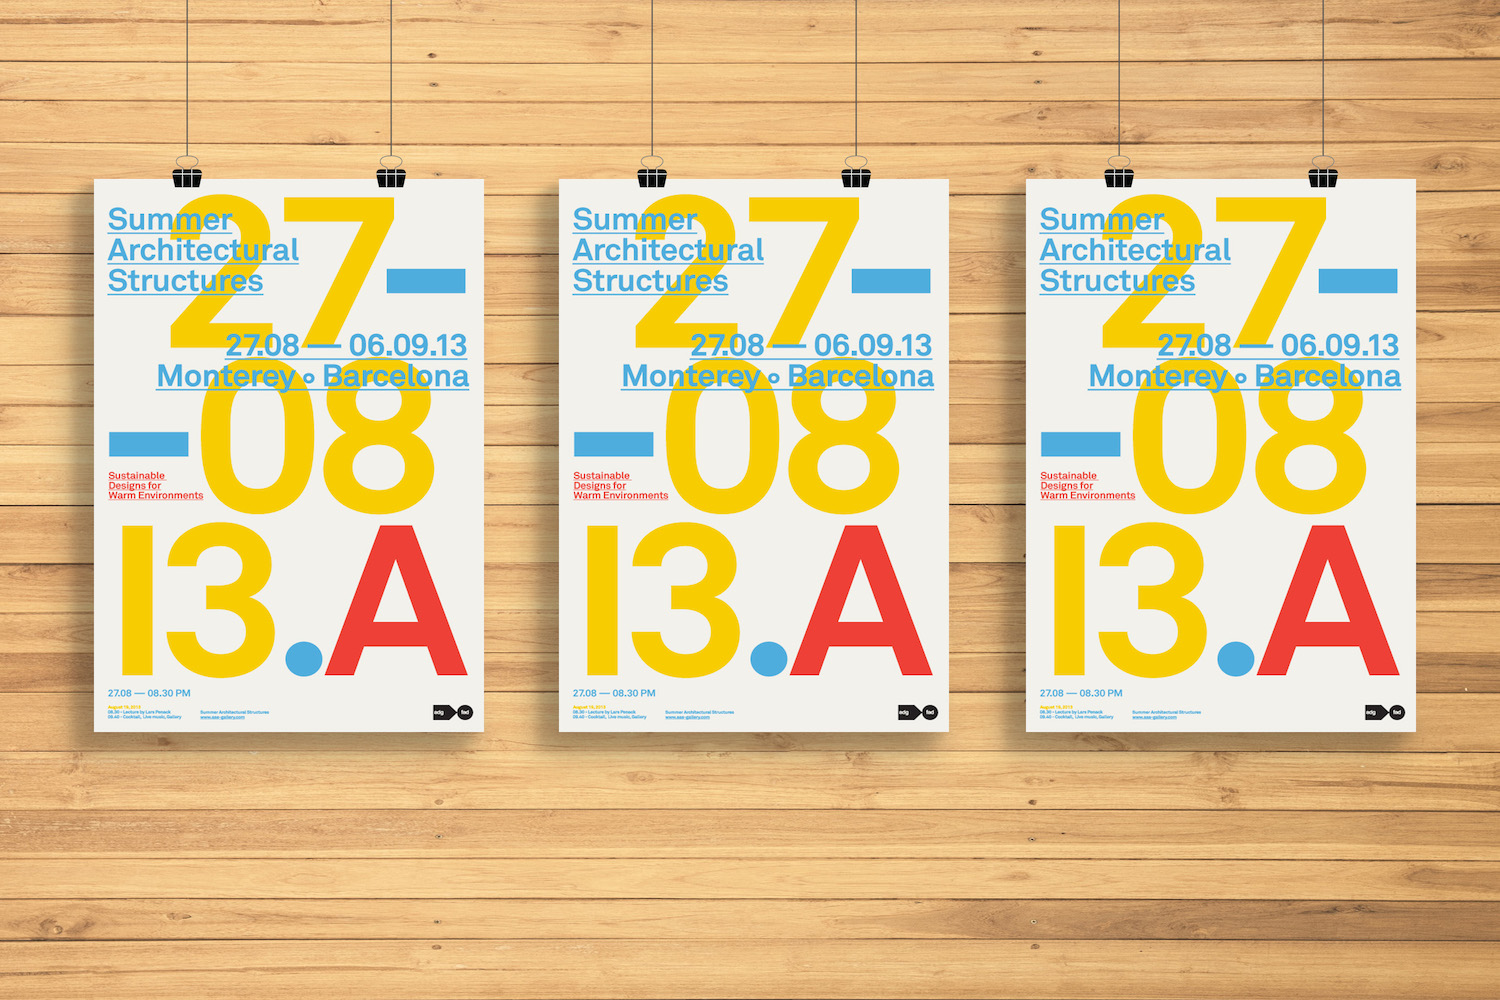 Summer Architectural Structures Event Poster Example3